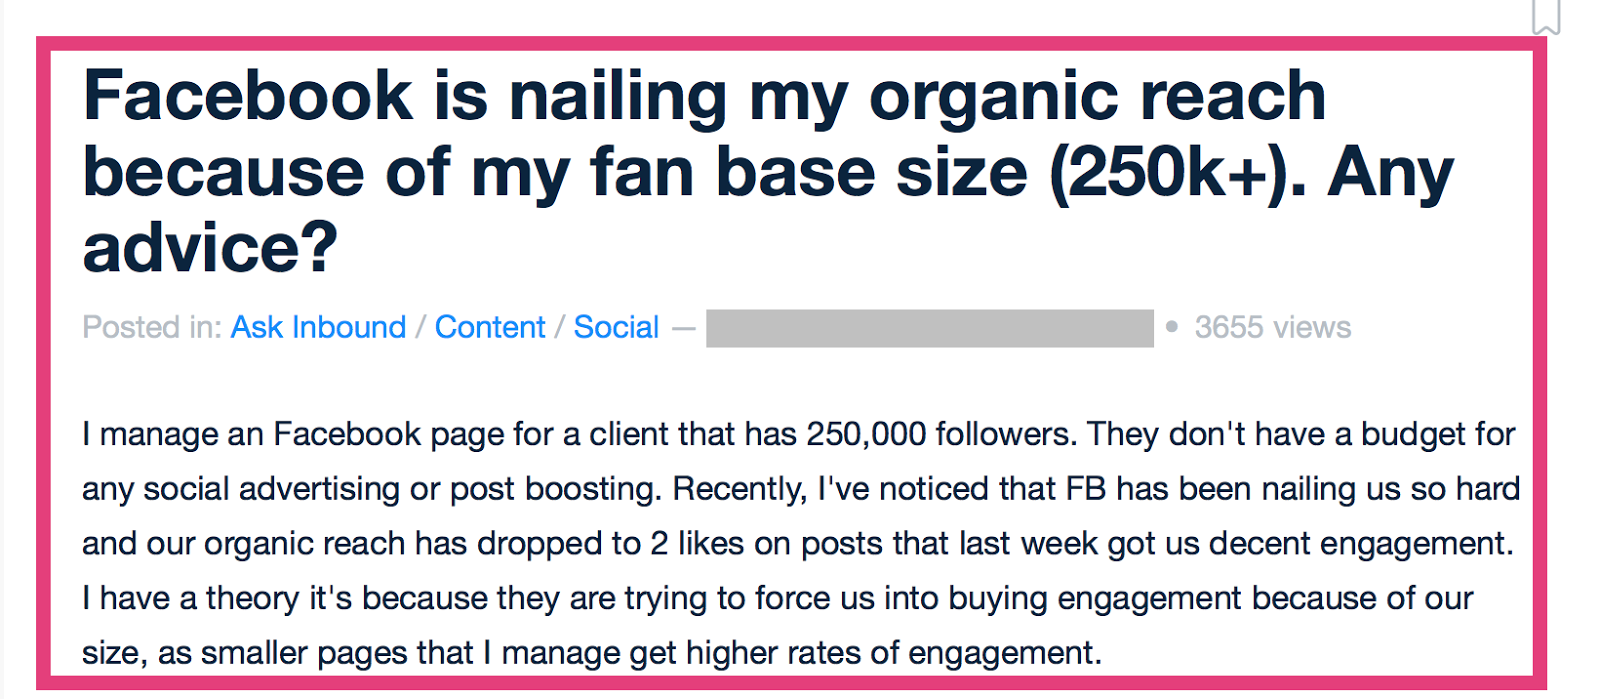 facebook organic reach lower for large audiences